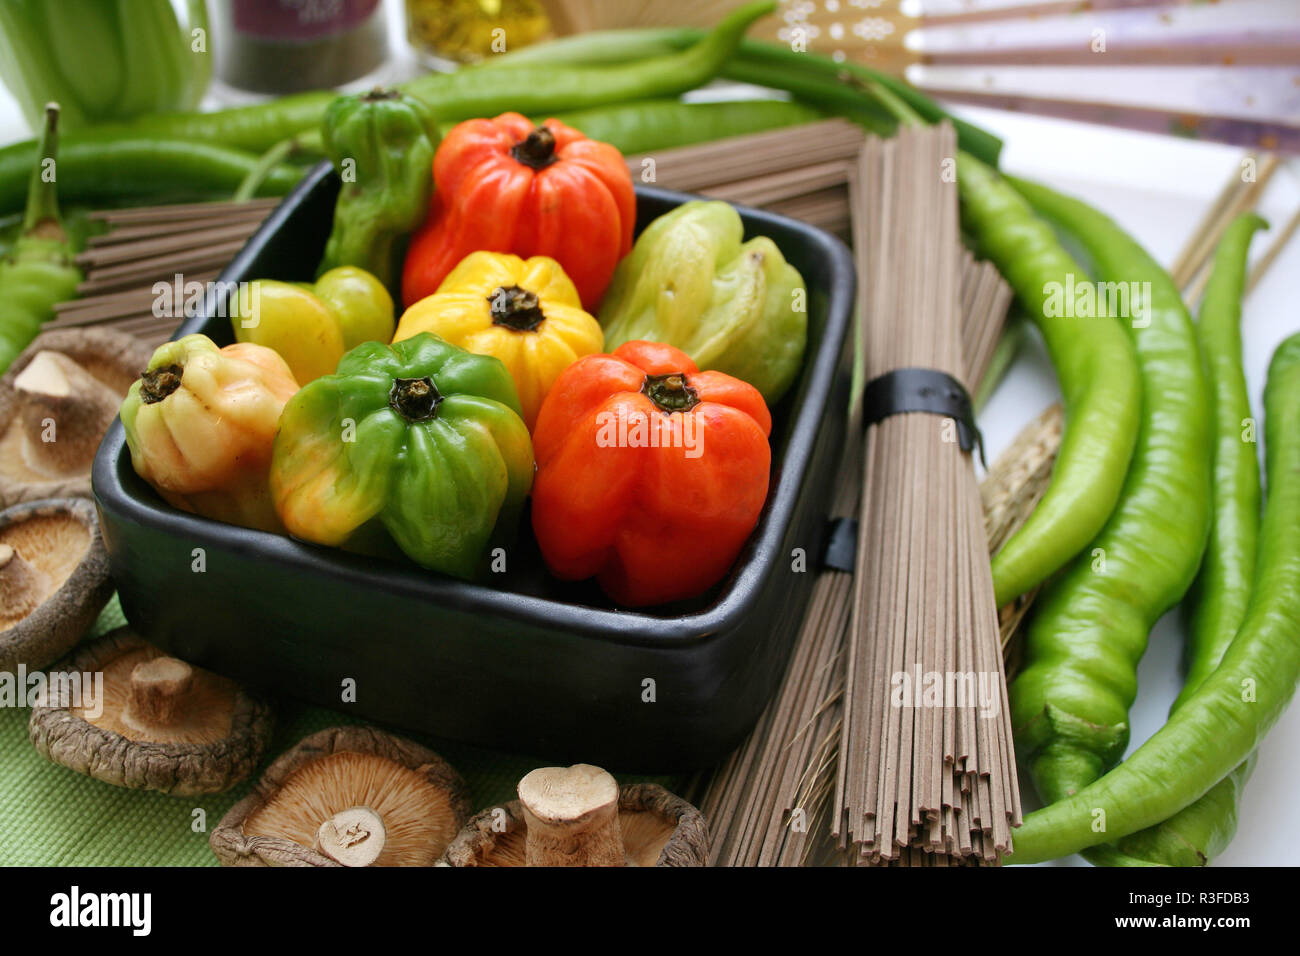 vegetables and noodles - Stock Image